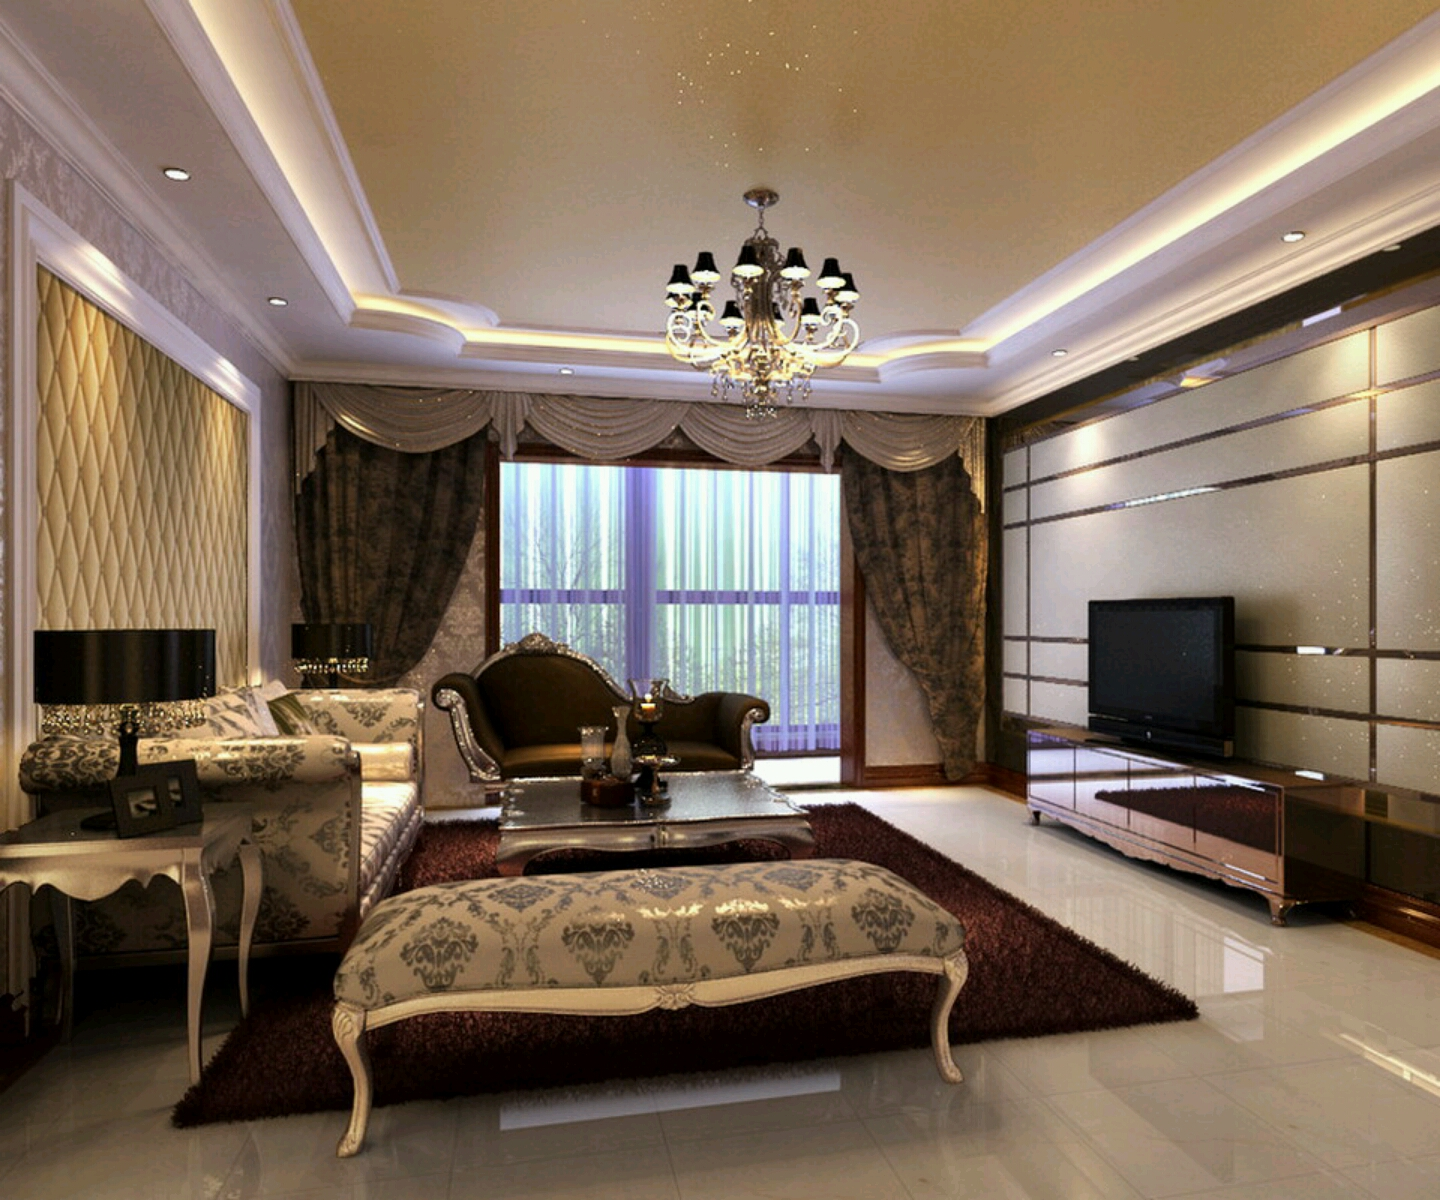 Interior decorating ideas living rooms dream house for Home decor ideas for living room